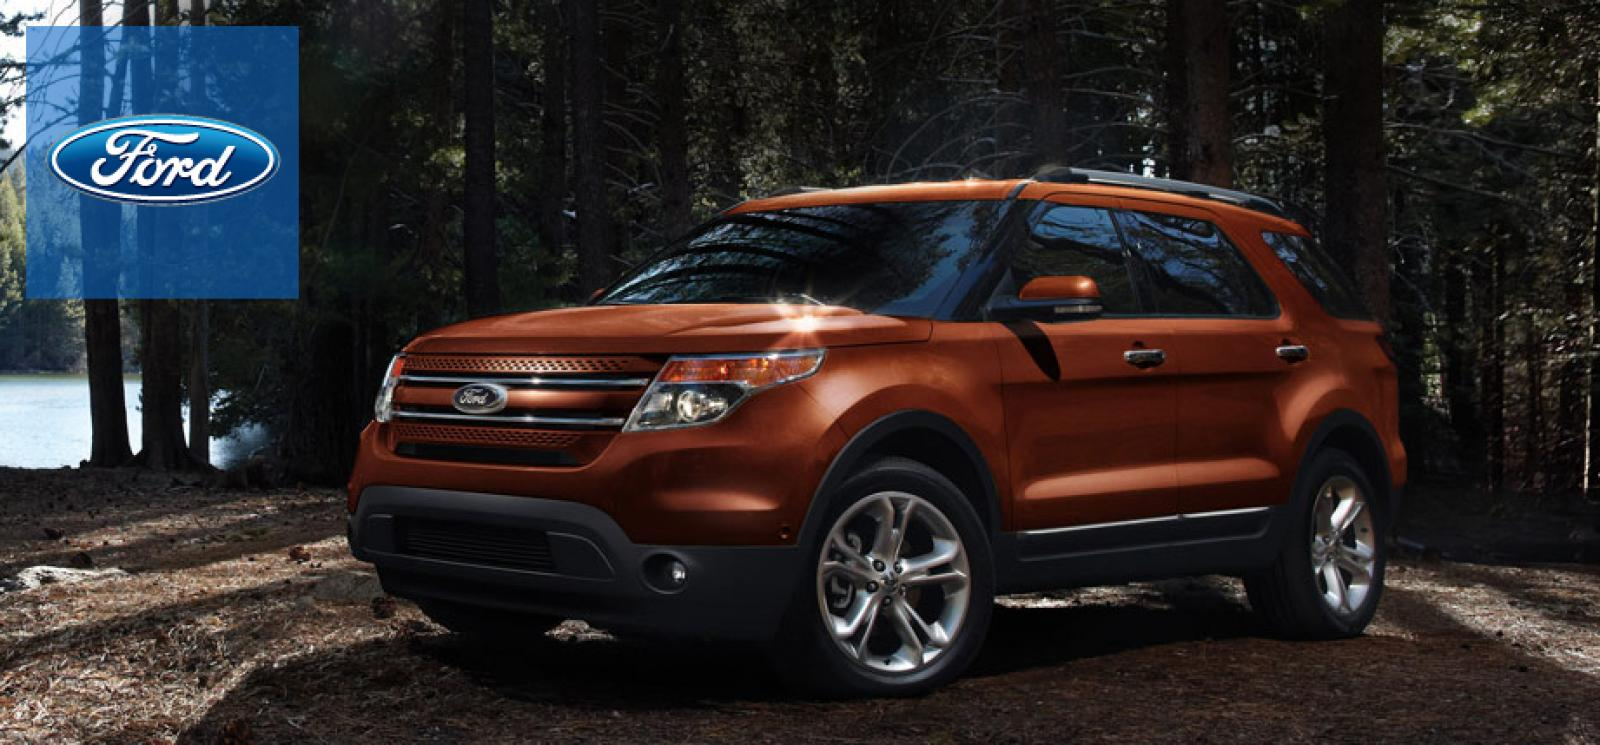 2014 ford explorer information and photos zombiedrive. Black Bedroom Furniture Sets. Home Design Ideas